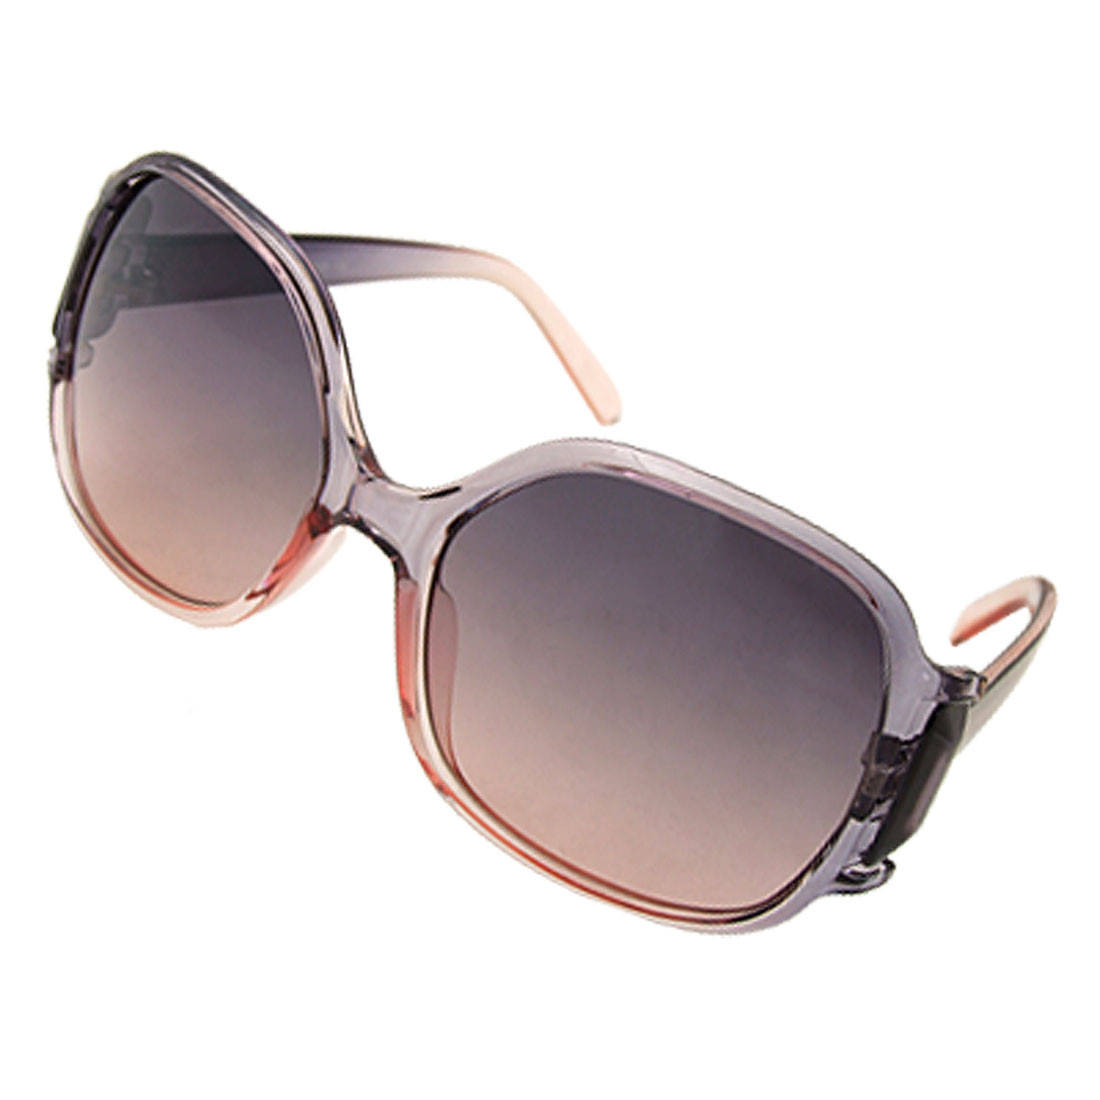 Plastic Frame Arms Ladies' Sunglasses Eyewear